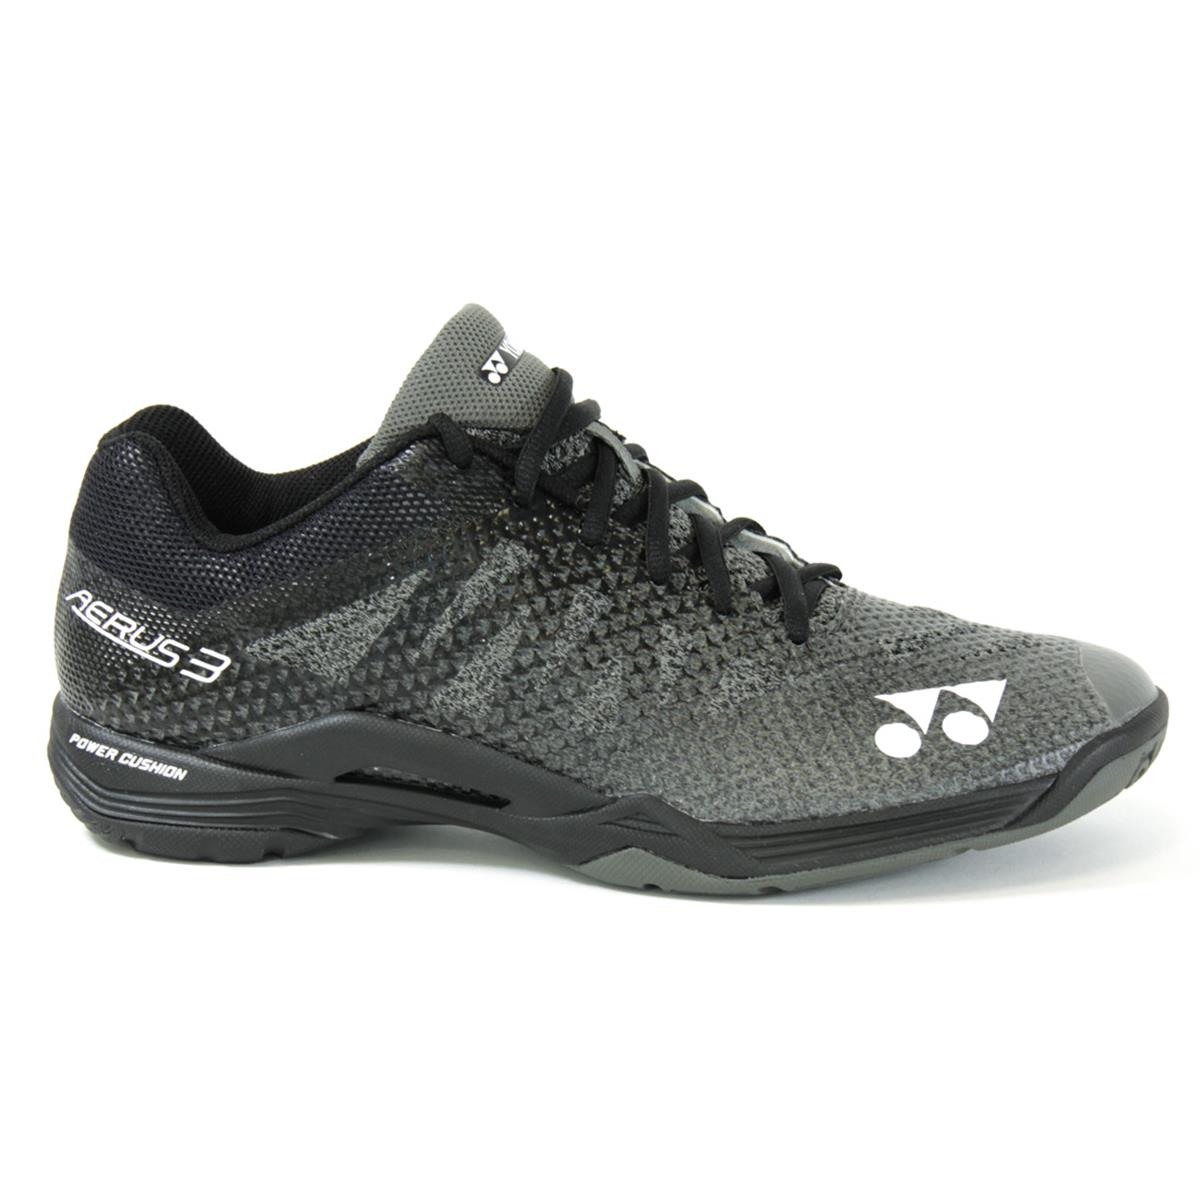 Yonex Power Cushion Aerus 3 Mens Badminton Shoes (Black)  220c902b7